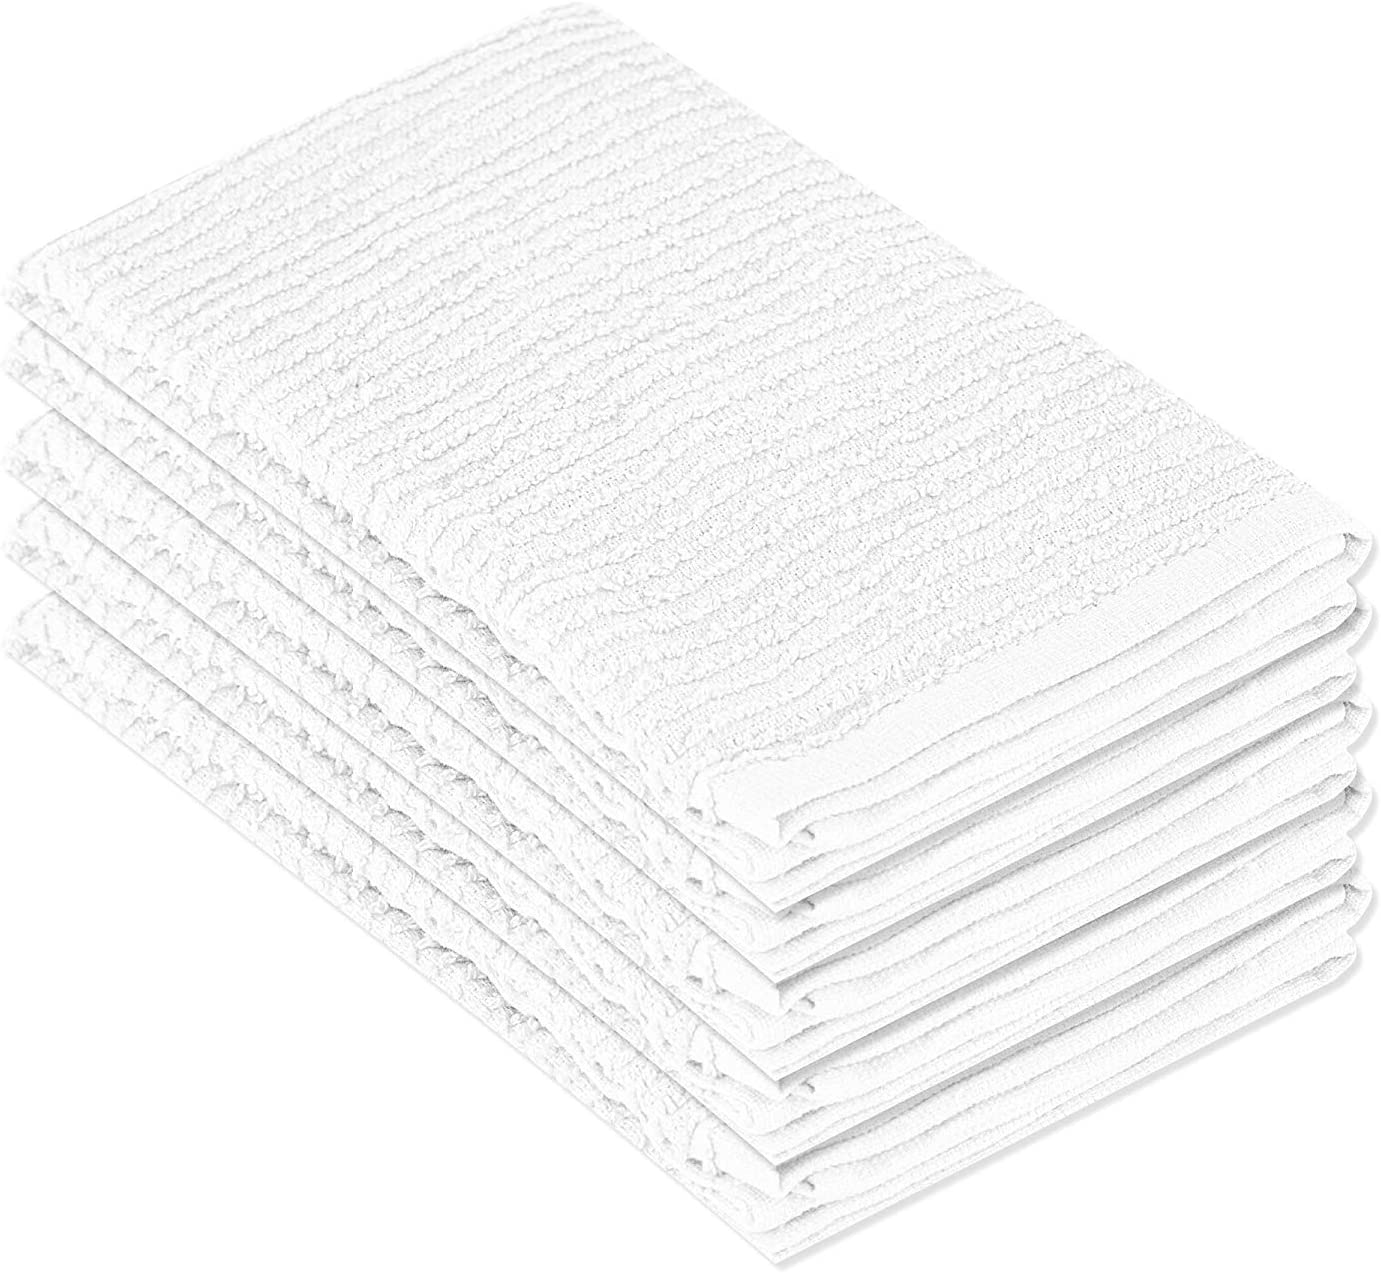 DecorRack 5 Pack 100% Cotton Bar Mop, 16 x 19 inch, Ultra Absorbent, Heavy Duty Kitchen Cleaning Towels, White (5 Pack)